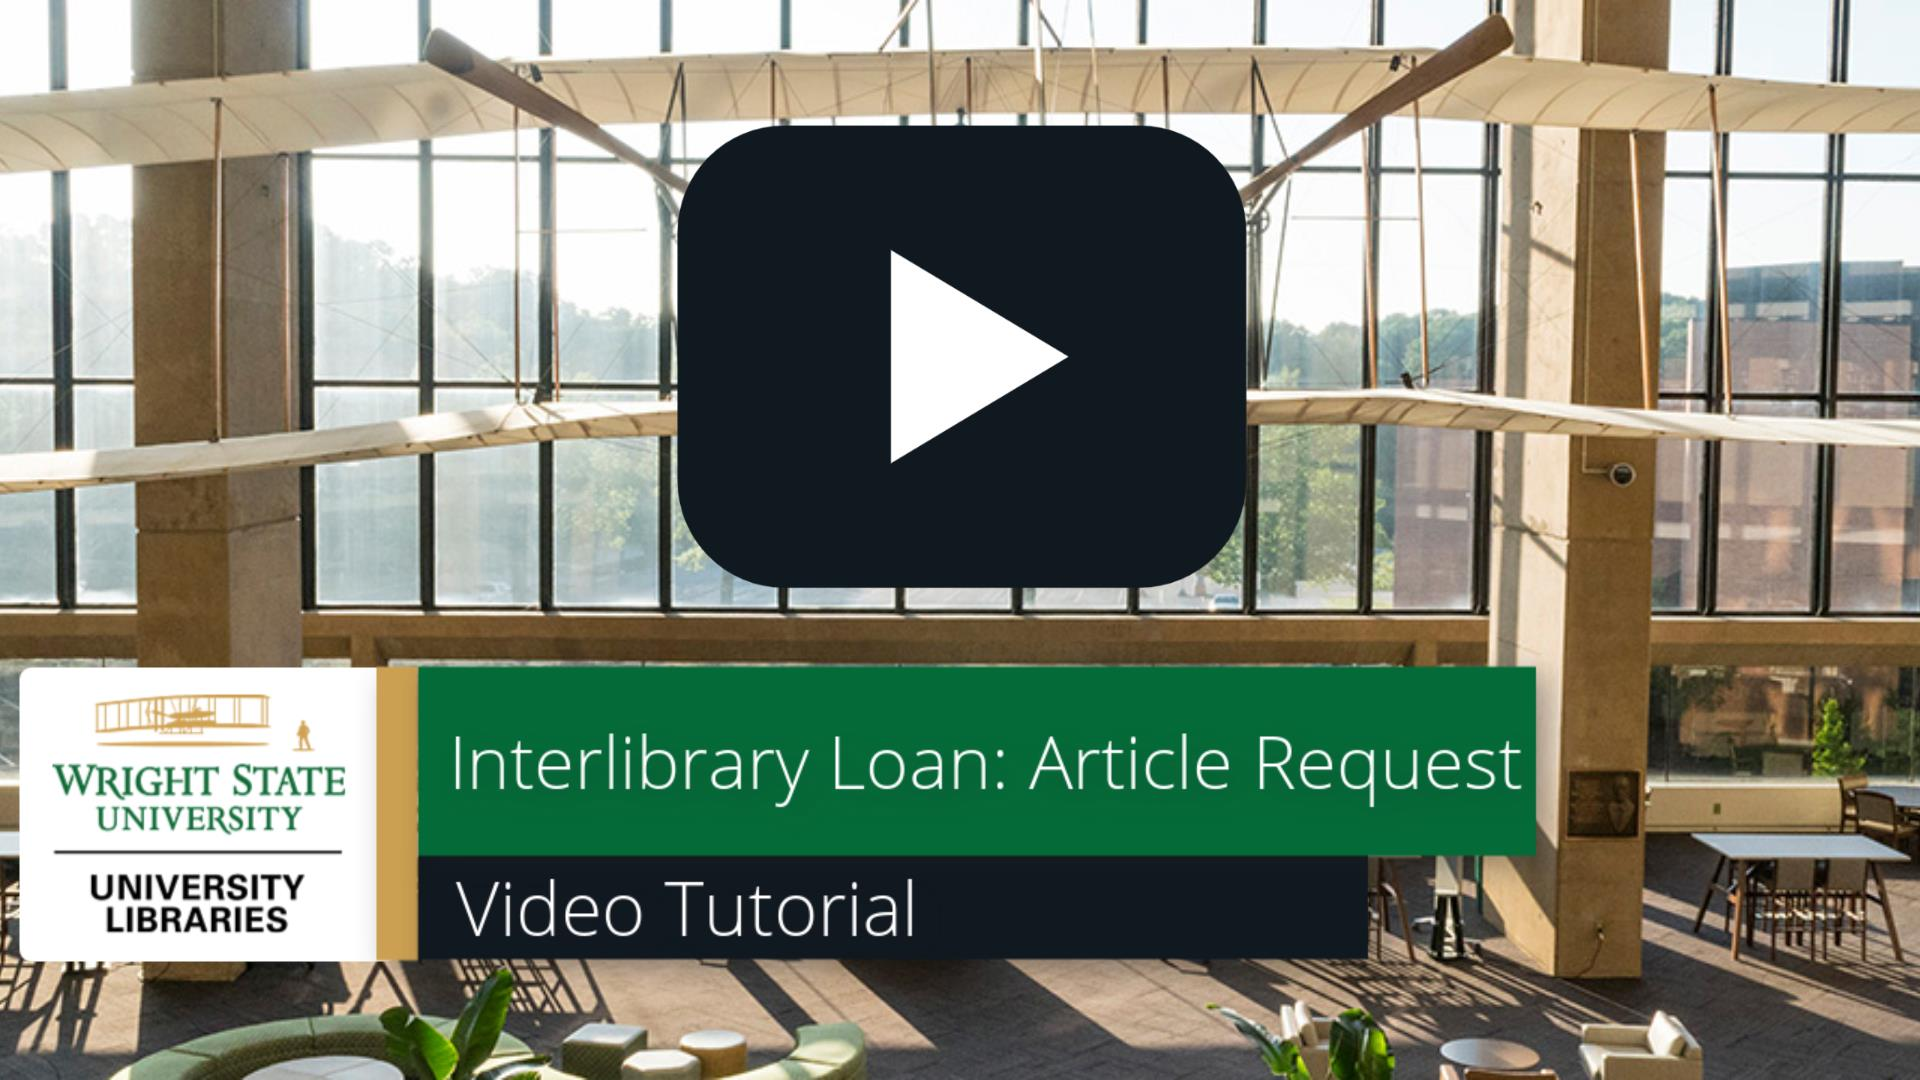 Interlibrary Loan Article Request: Video Tutorial